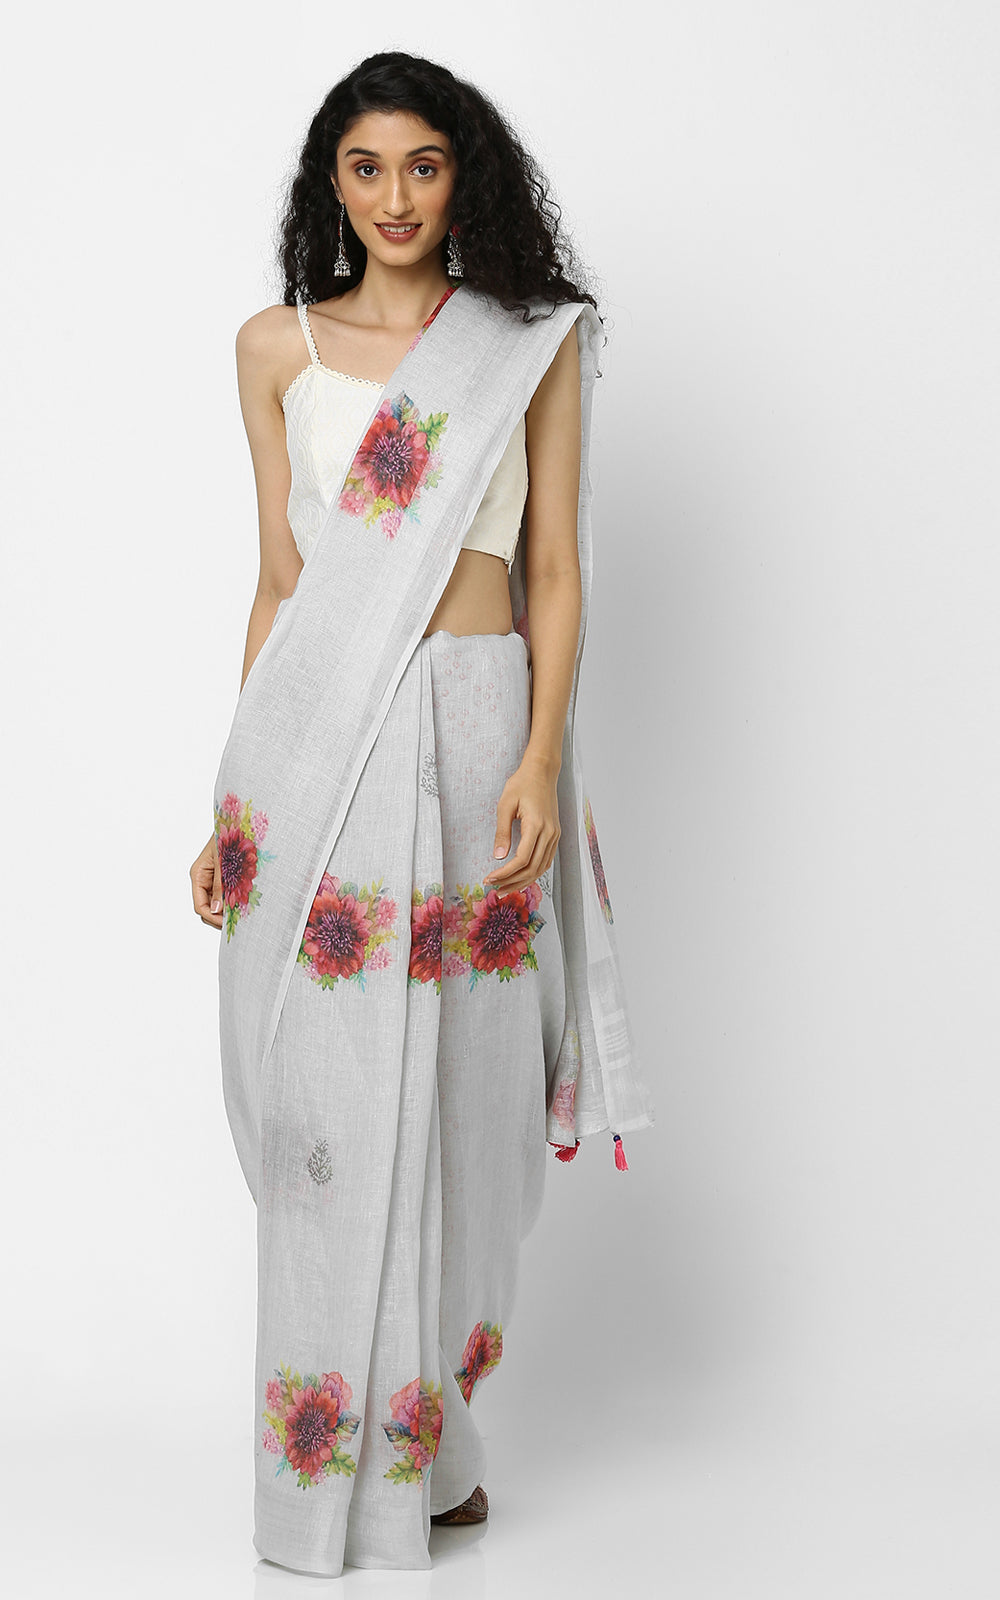 GREY LINEN SAREE WITH RED ROSES